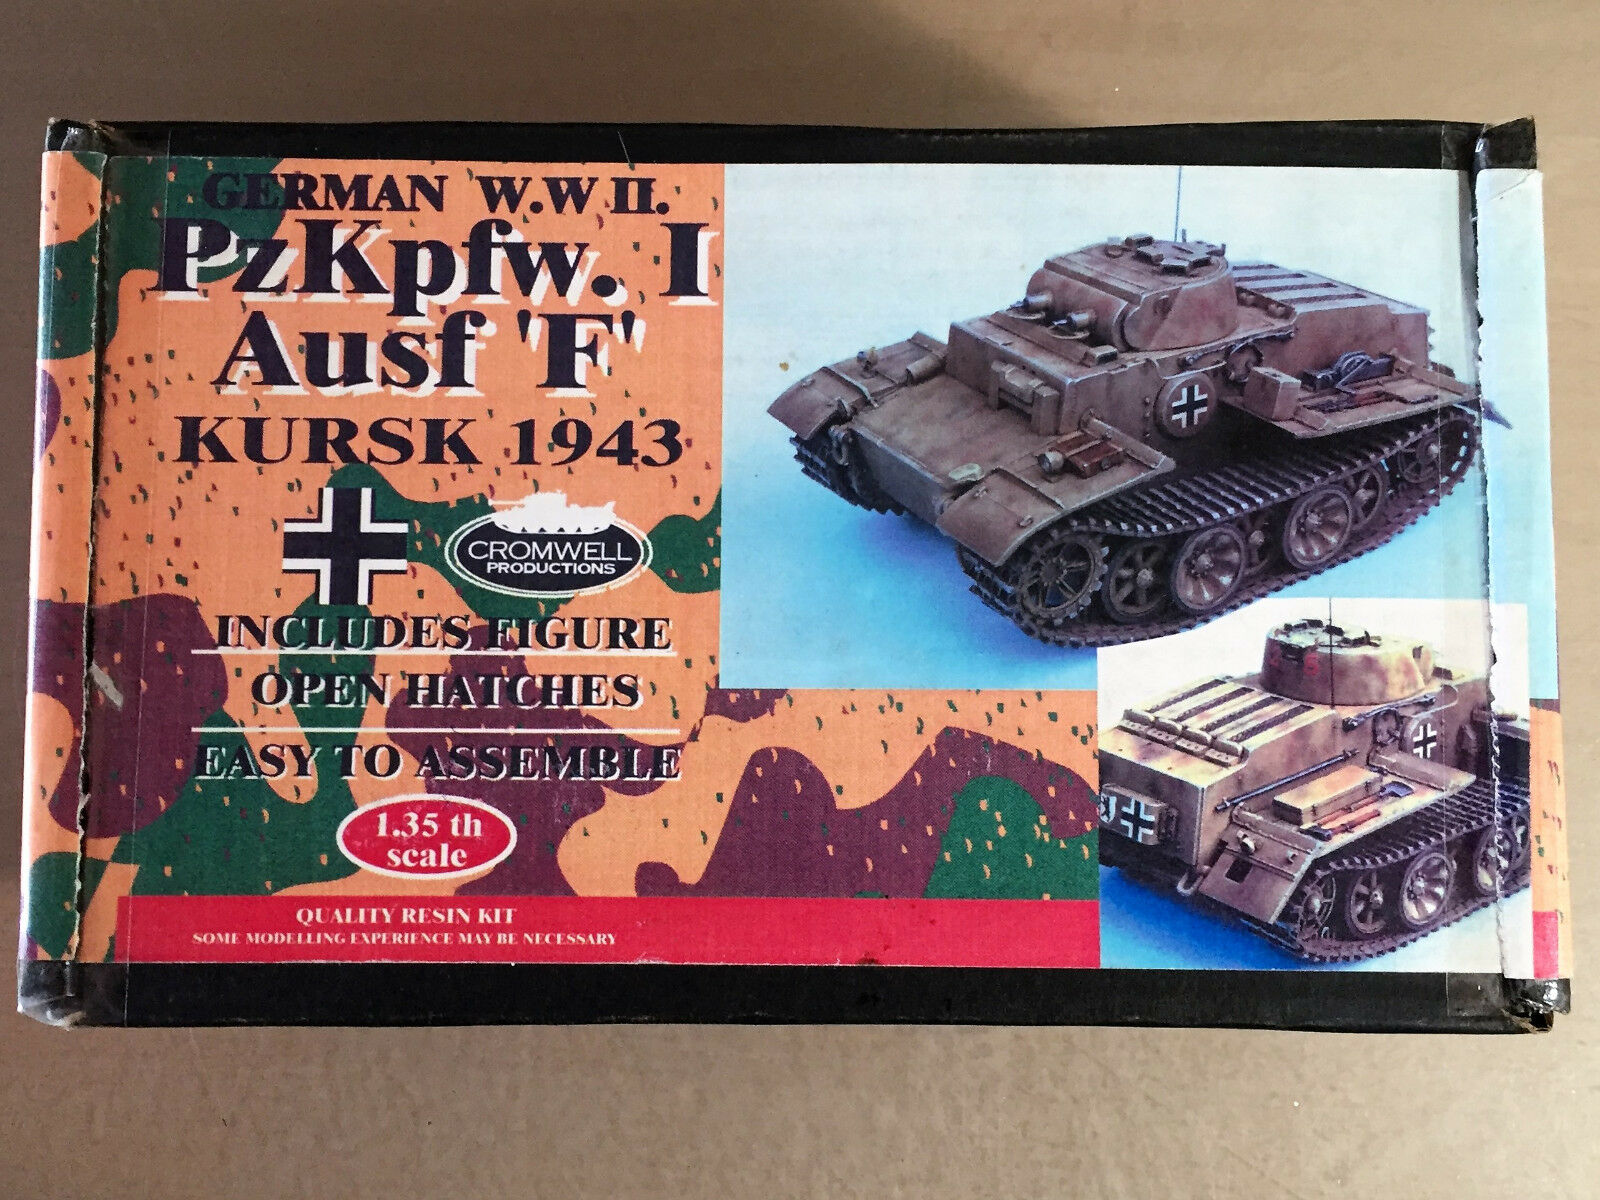 CROMWELL PRODUCTIONS - PzKpfw.I Ausf 'F' KURSK 1943 GERMAN WWII - 1/35 RESIN KIT